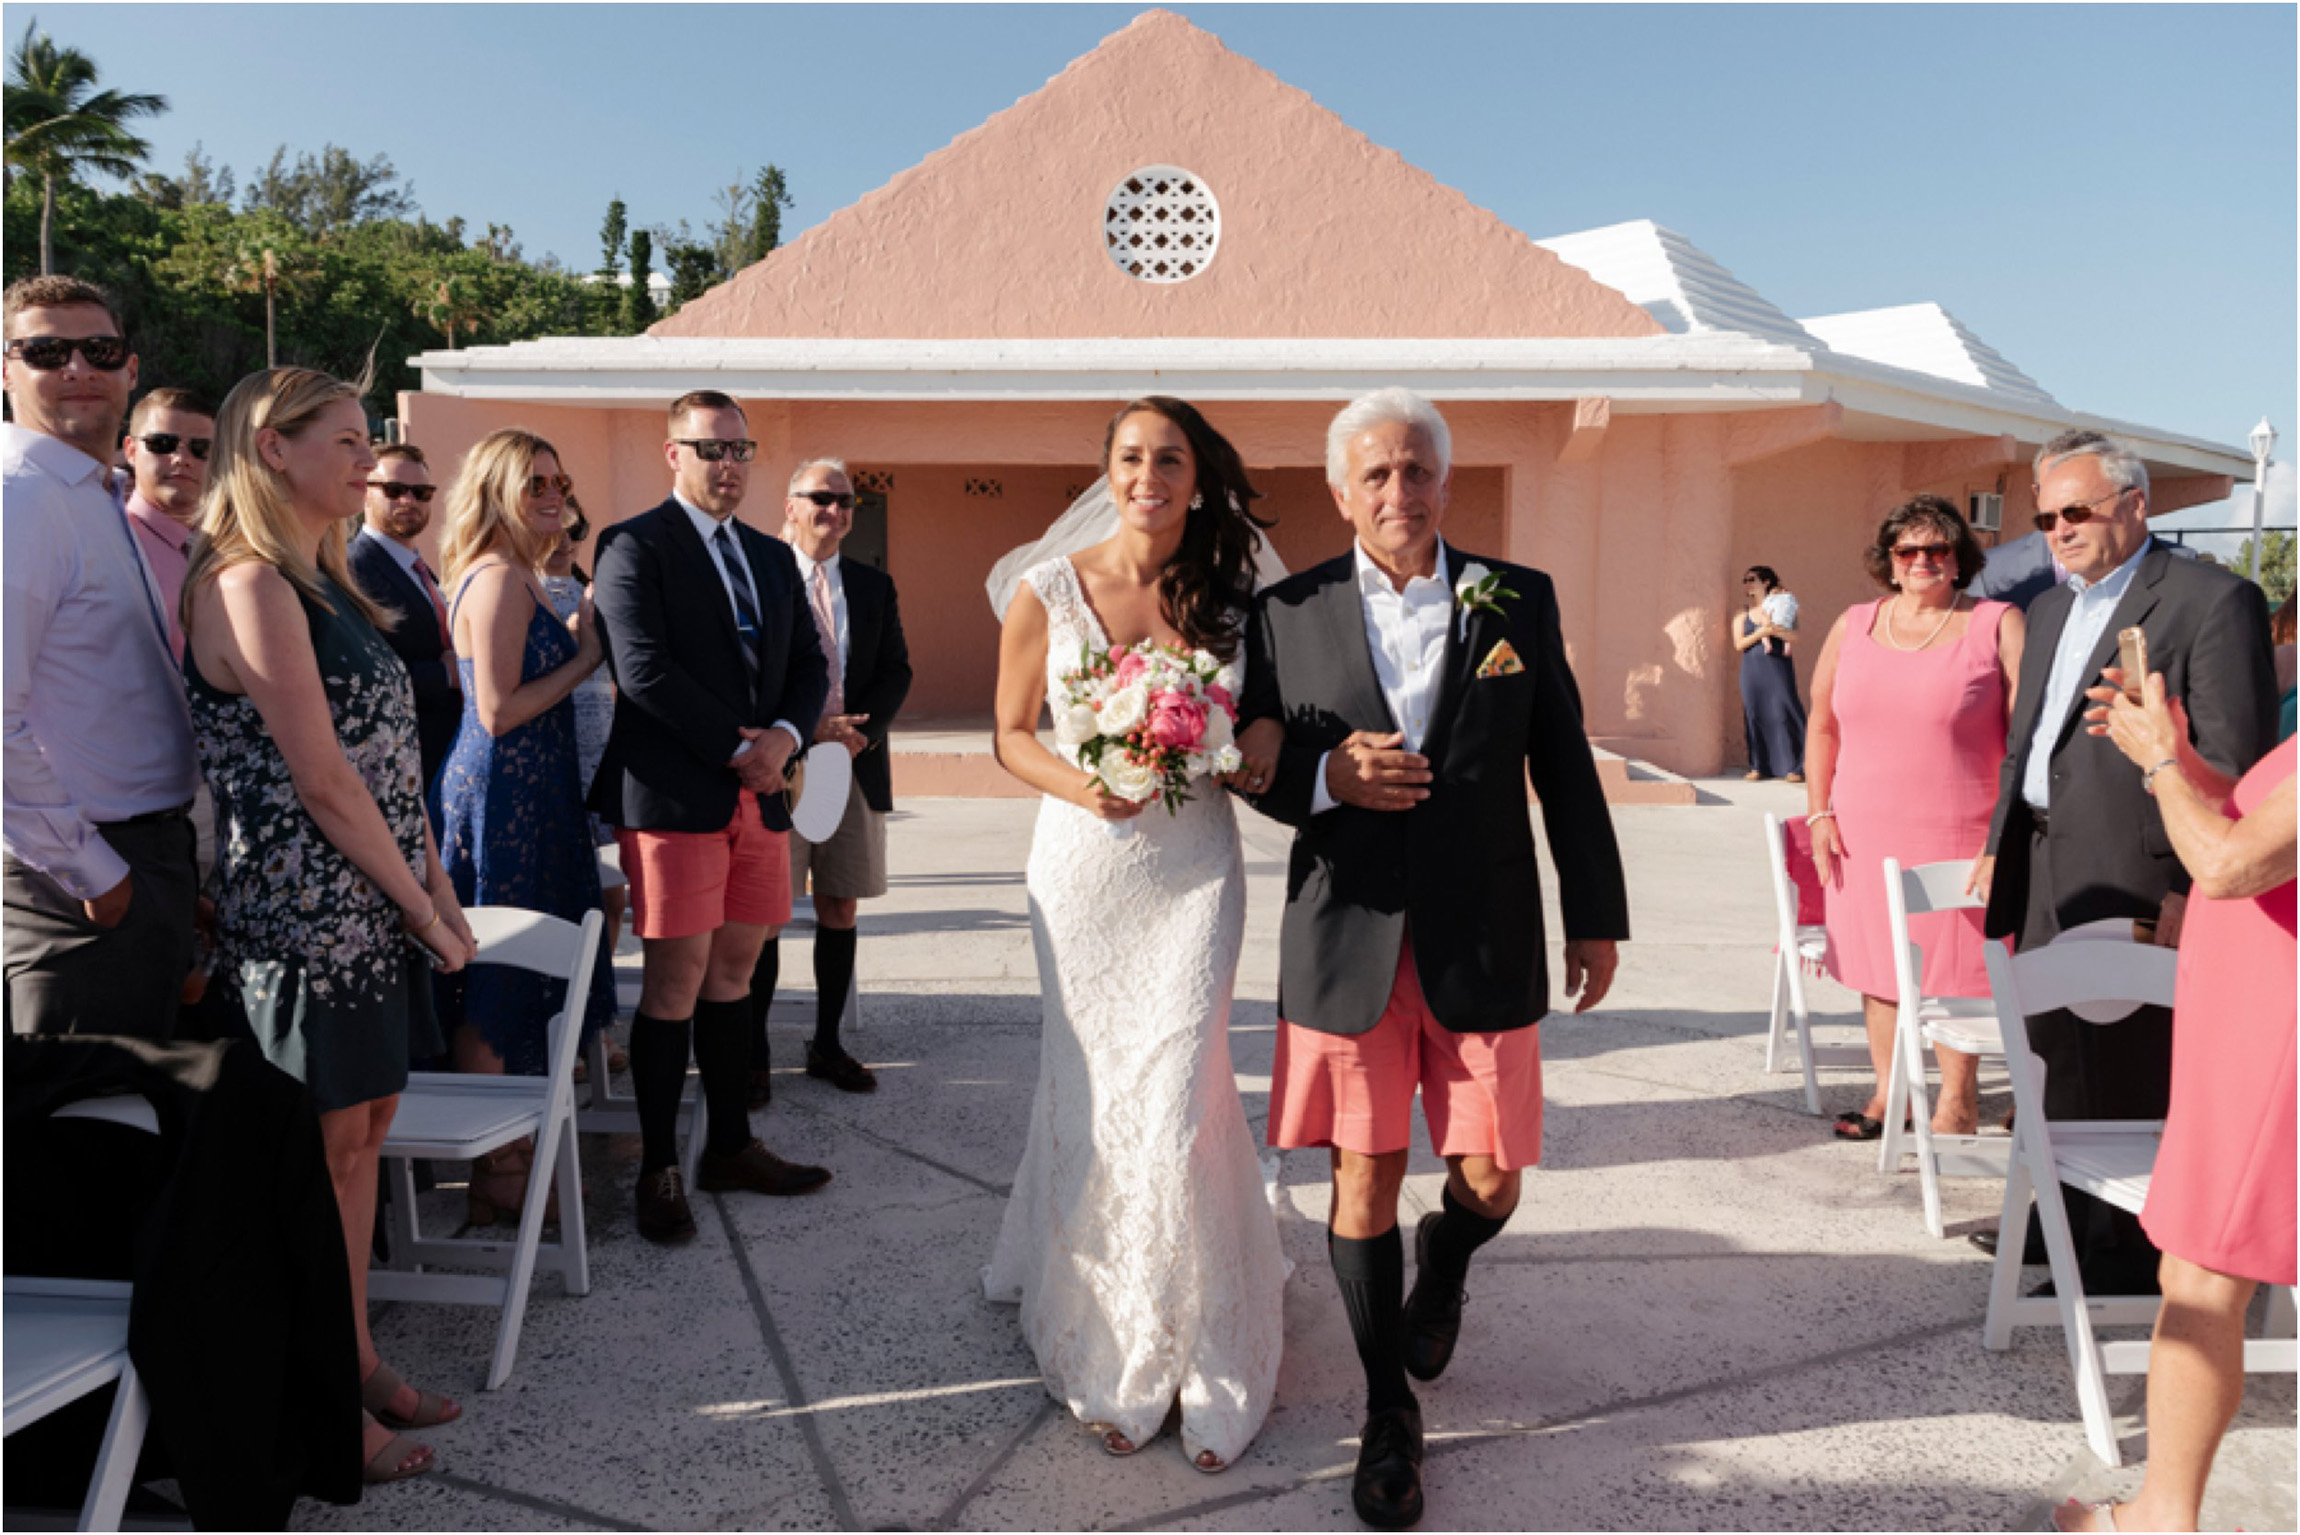 ©FianderFoto_Bermuda Wedding Photographer_Fairmont Southampton_Wedding_Anna_Thomas_046.jpg